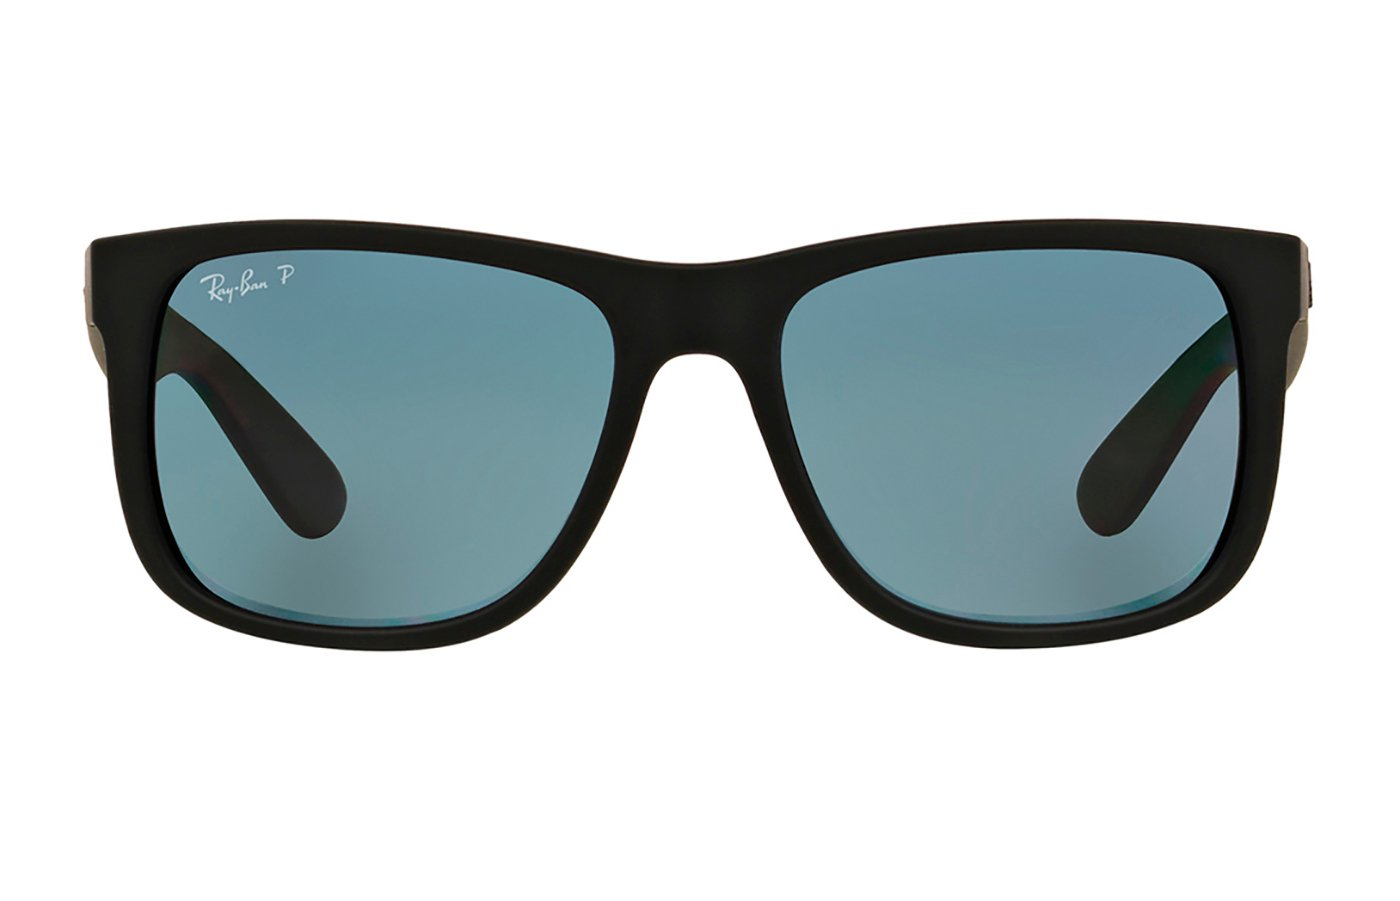 RAY-BAN JUSTIN 0RB4165 55 622/2V BLACK RUBBER POLARIZADA